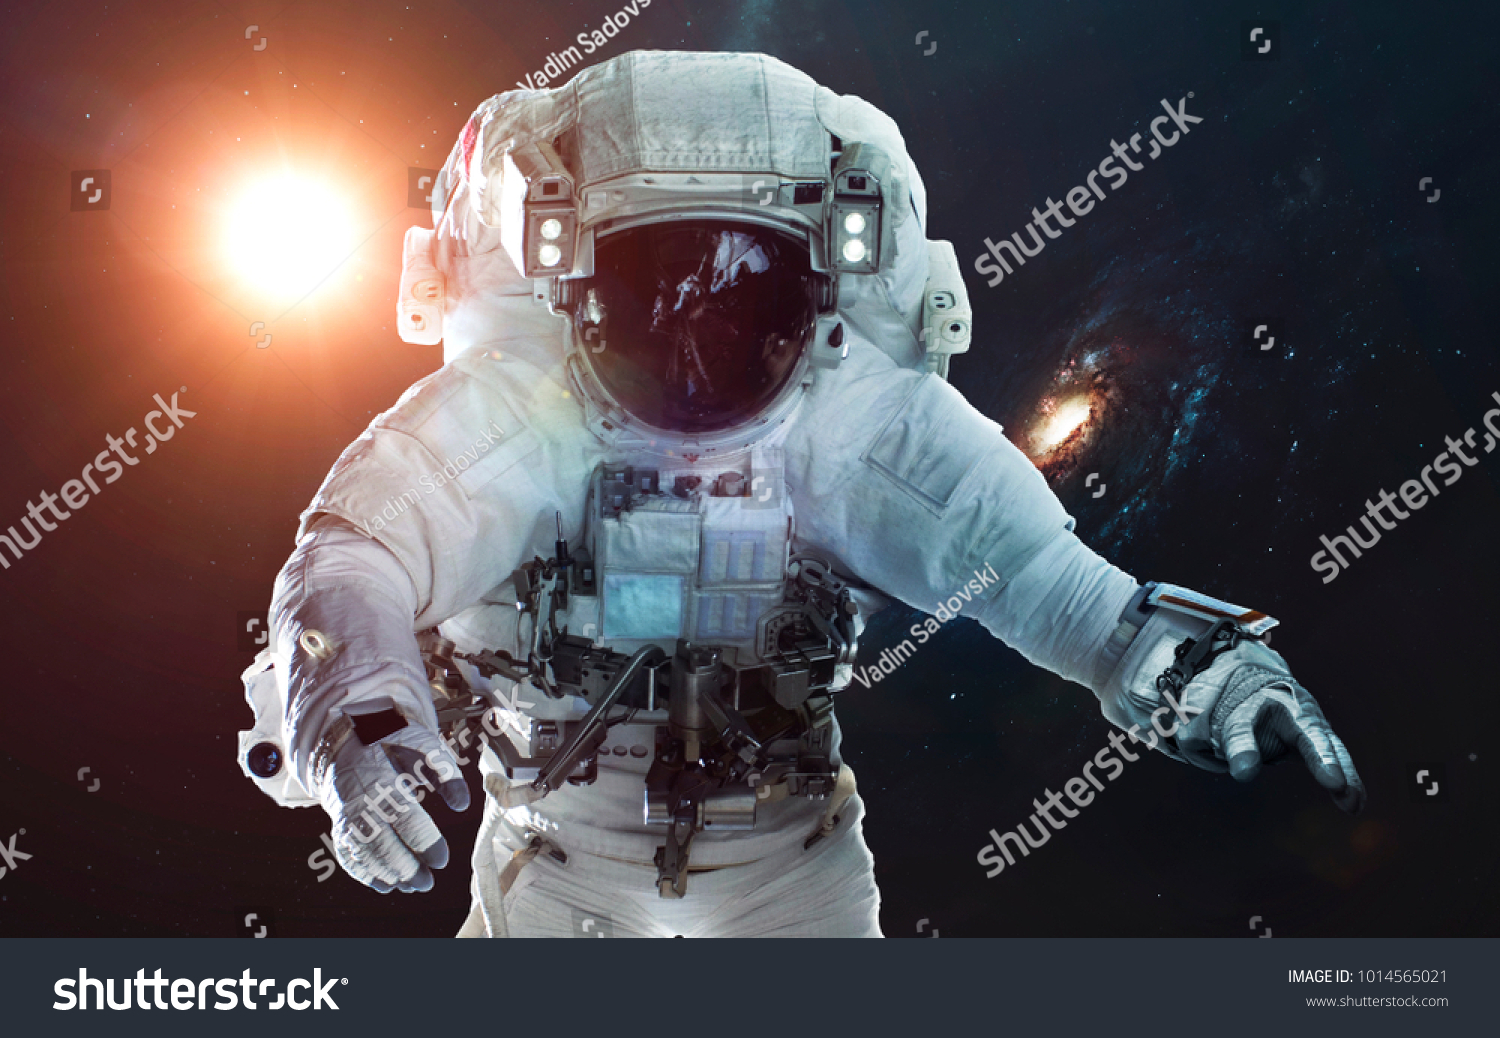 Astronaut In Deep Space Symbol Of Space Exploration Elements Of